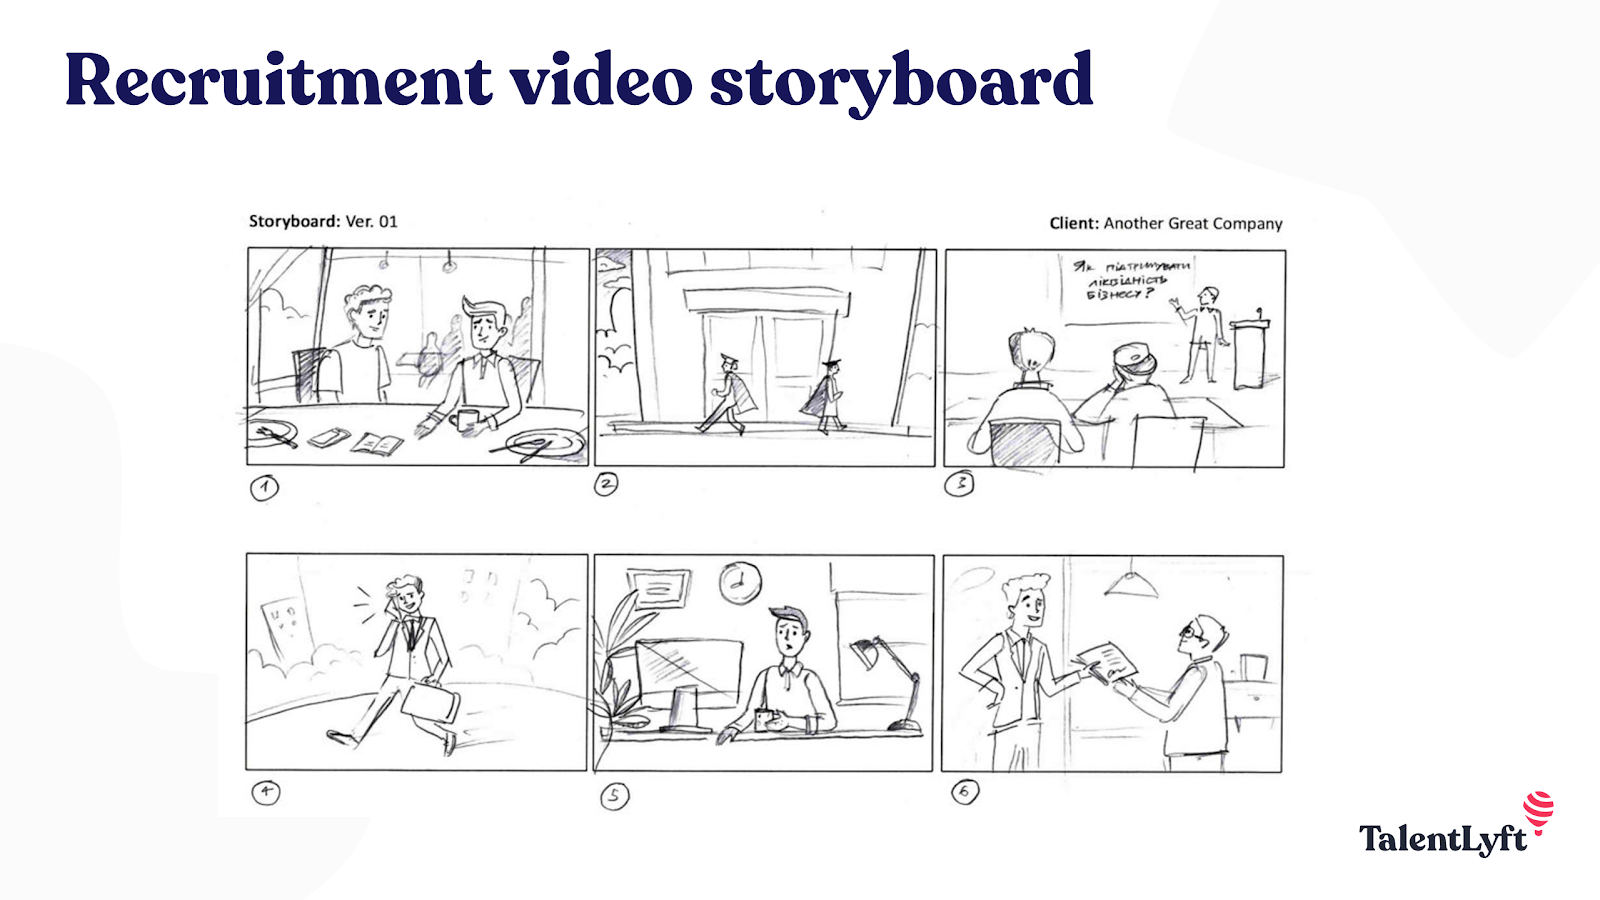 Recruitment video storyboard